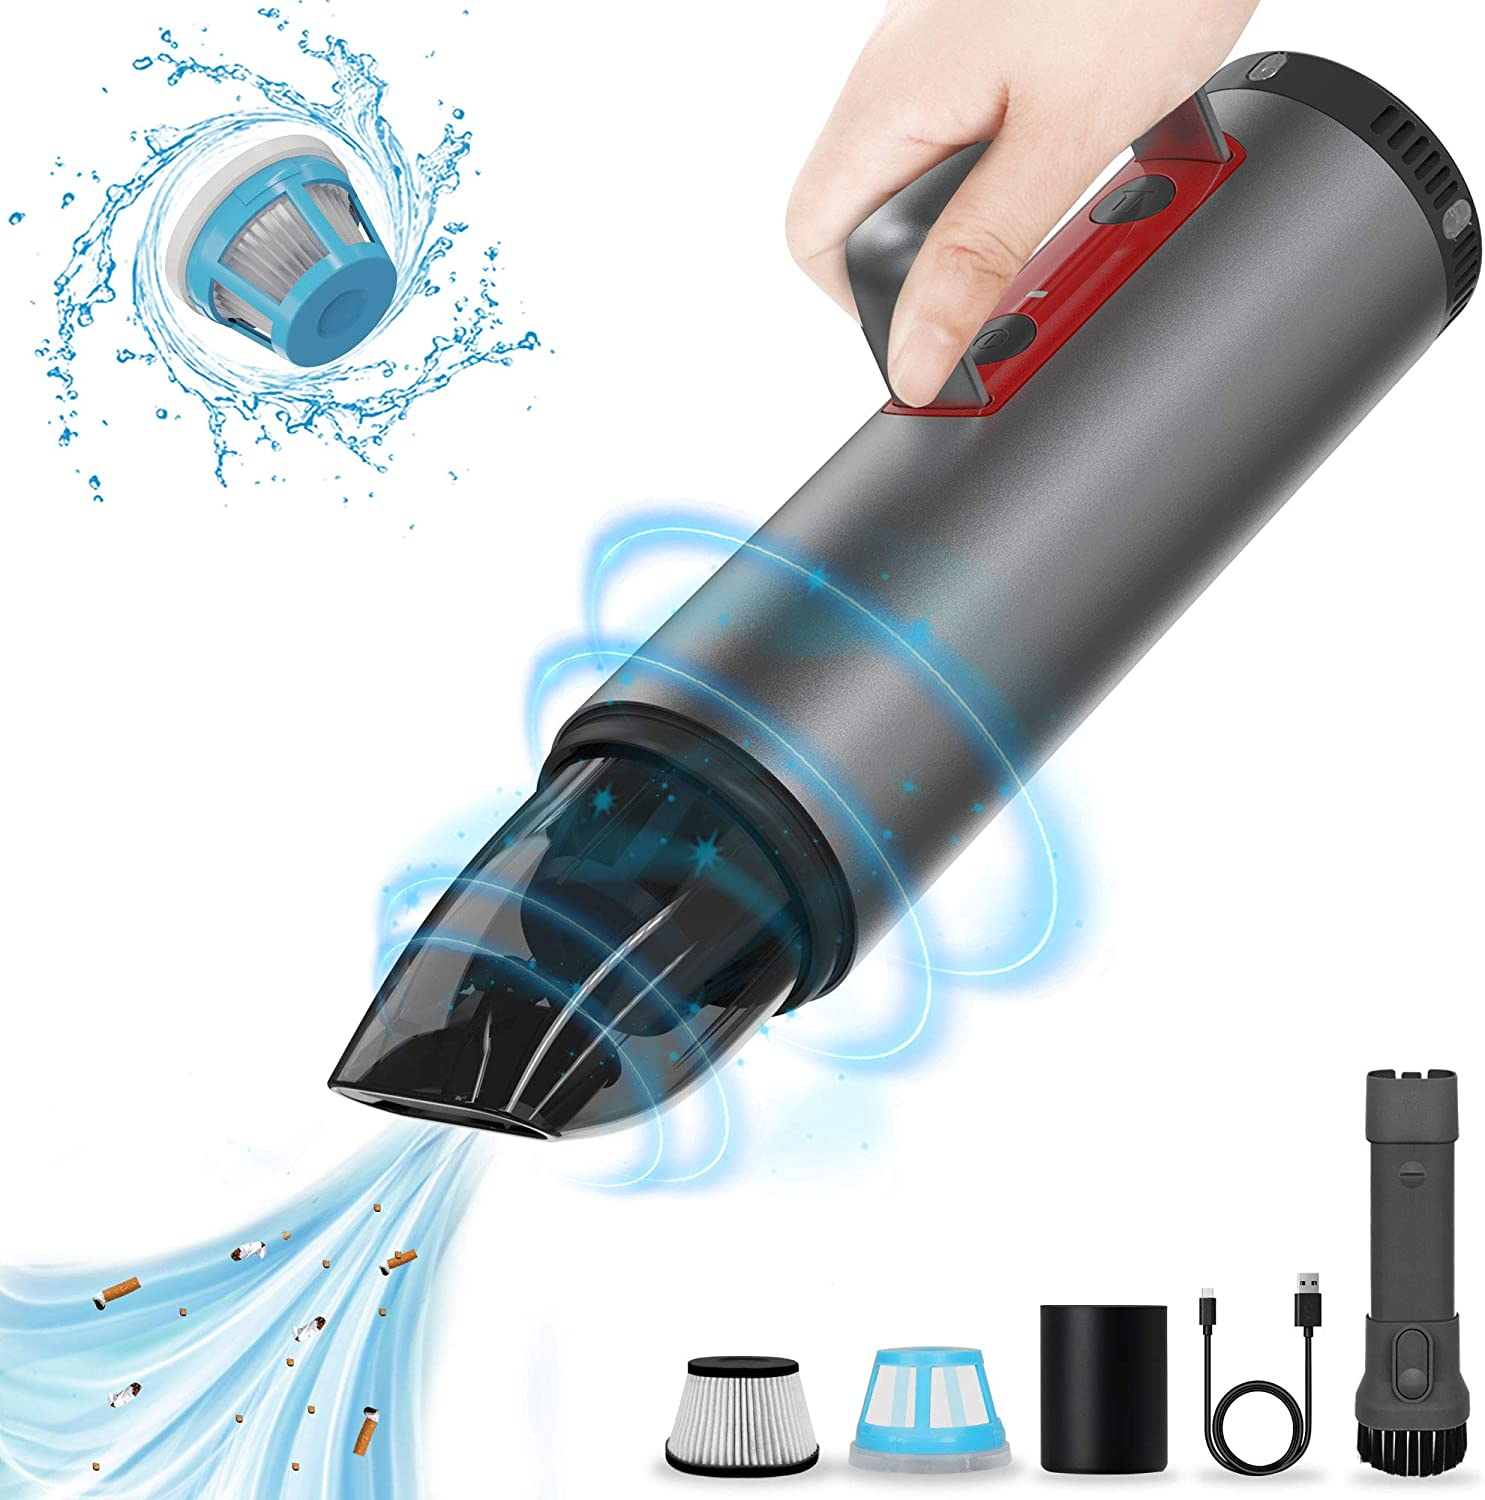 Car Vacuum Cleaner, POWERGIANT Handheld Cordless Rechargeable Vacuum Cleaner Car Accessories Kit with Strong Suction and LED Lights for Home Office Pet Hair Care and Car Interior Cleaning